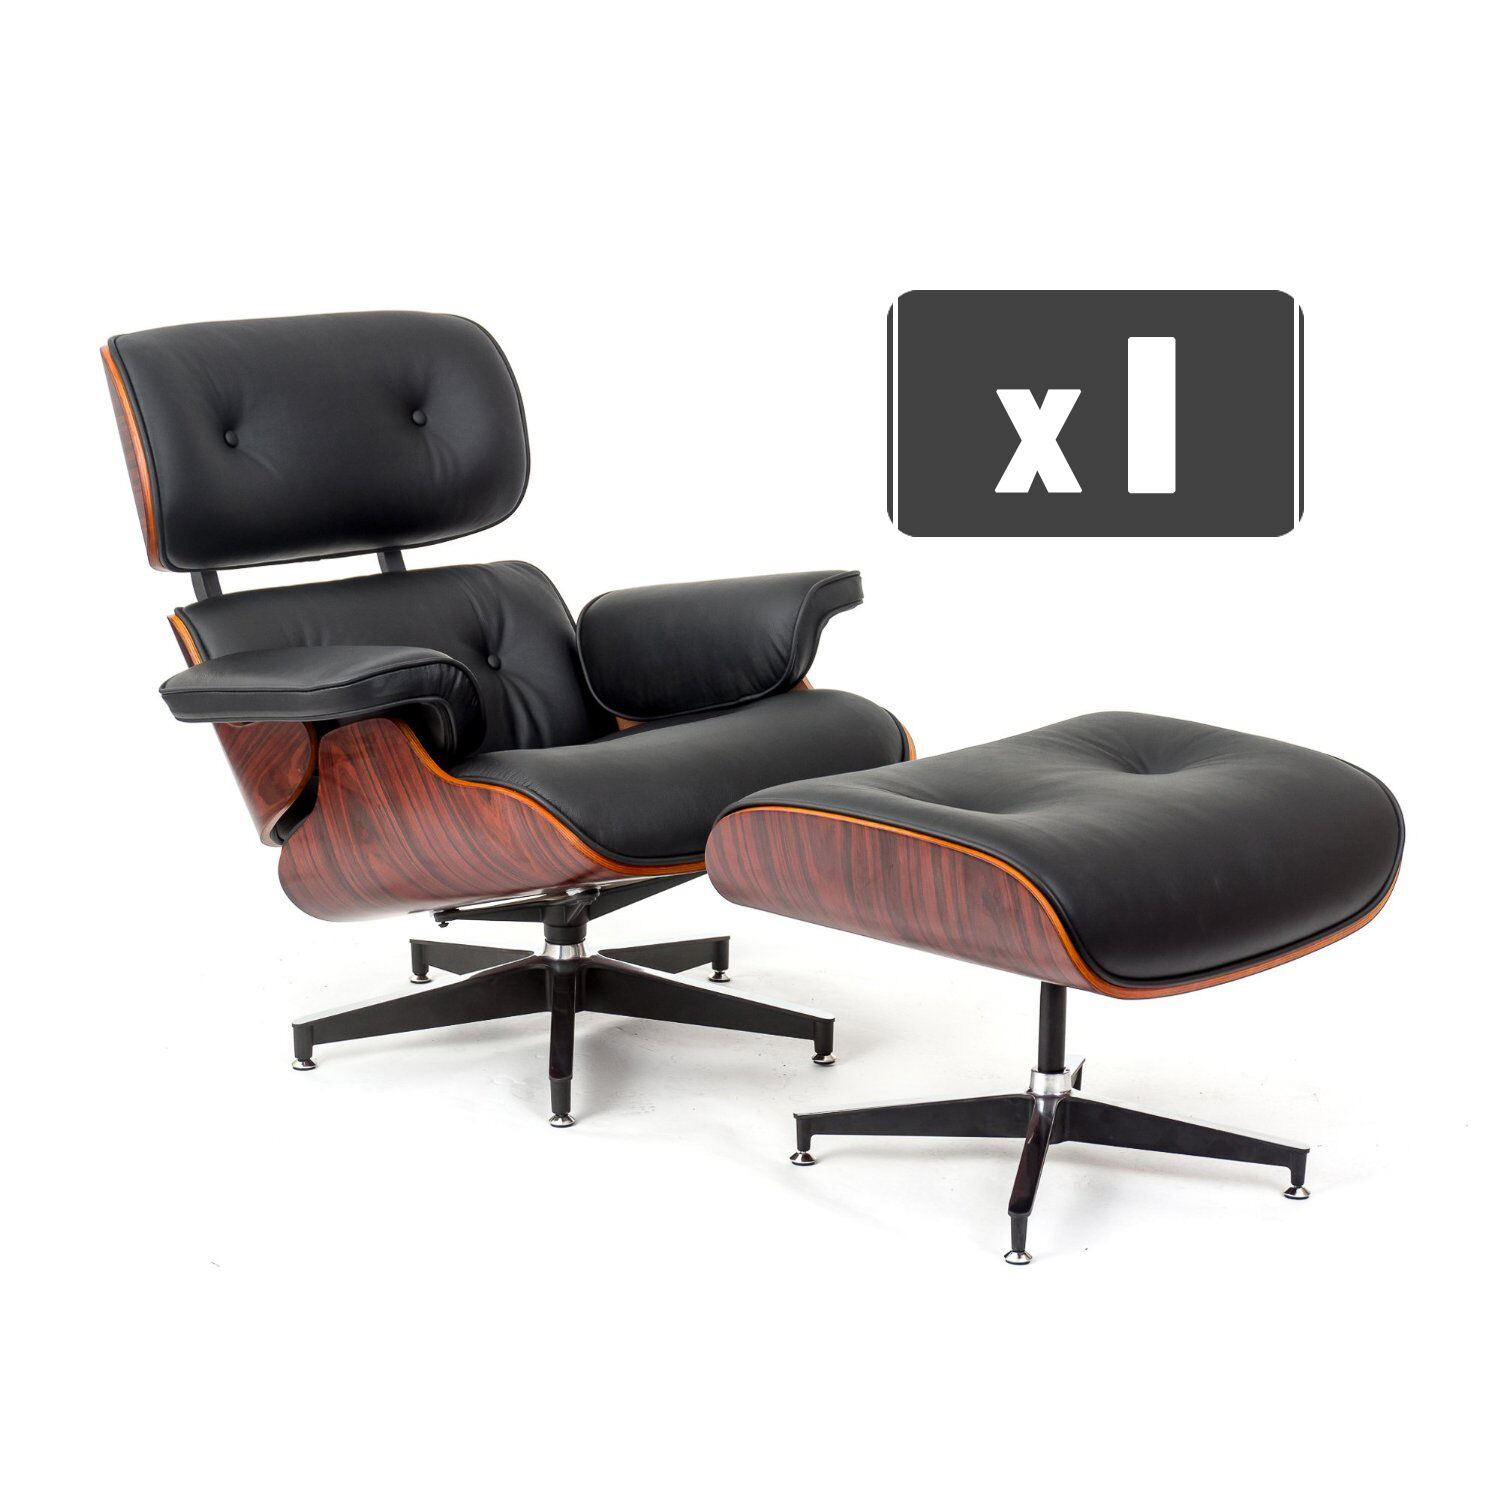 Eames Chairs Qld Replica Charles Eames Lounge Chair And Ottoman In Black